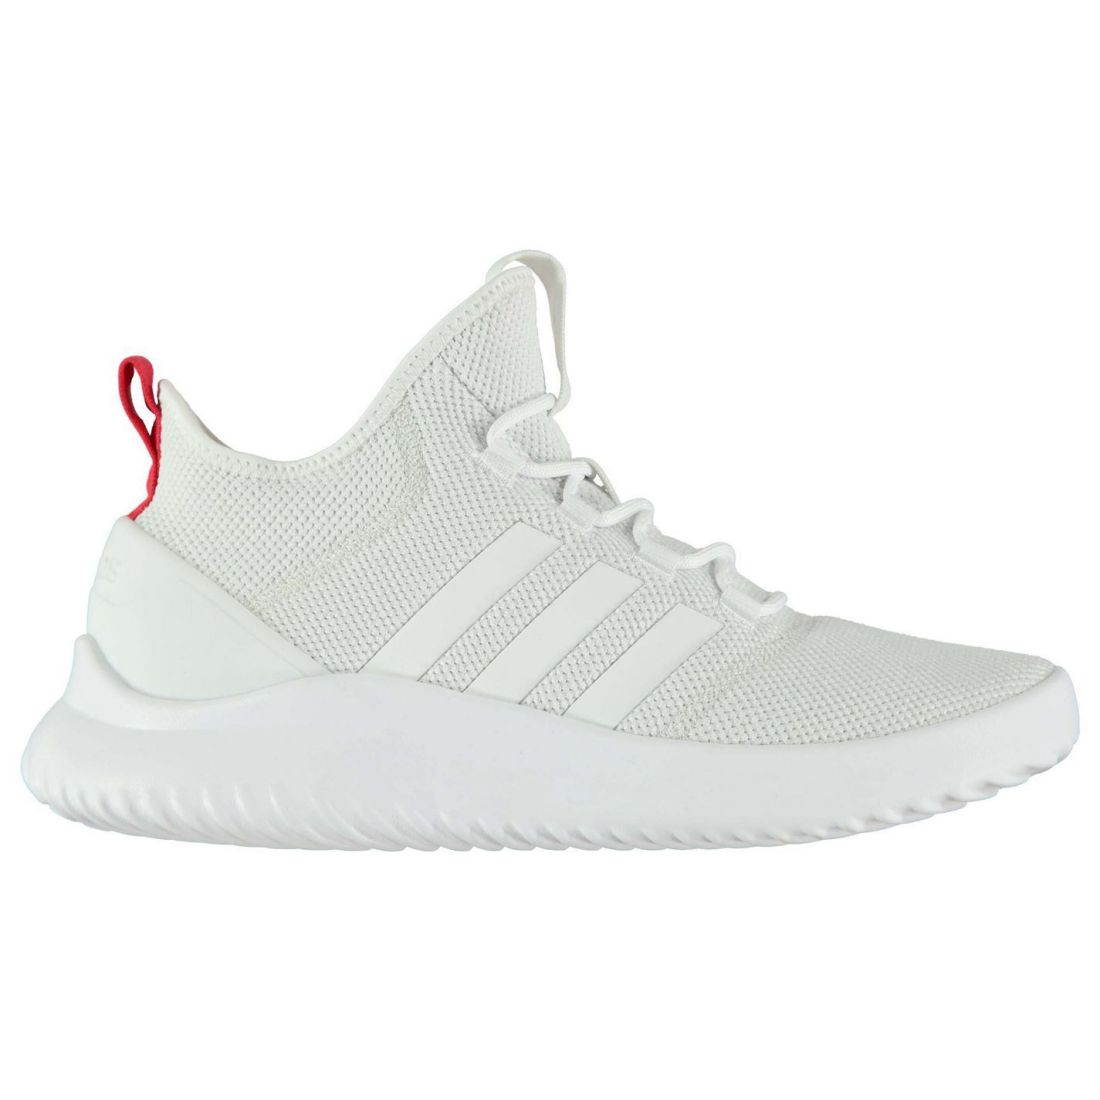 new concept 18233 e3df4 Details about adidas Cloudfoam Ultimate B Ball Sneakers Mens Gents Runners  Laces Fastened Knit